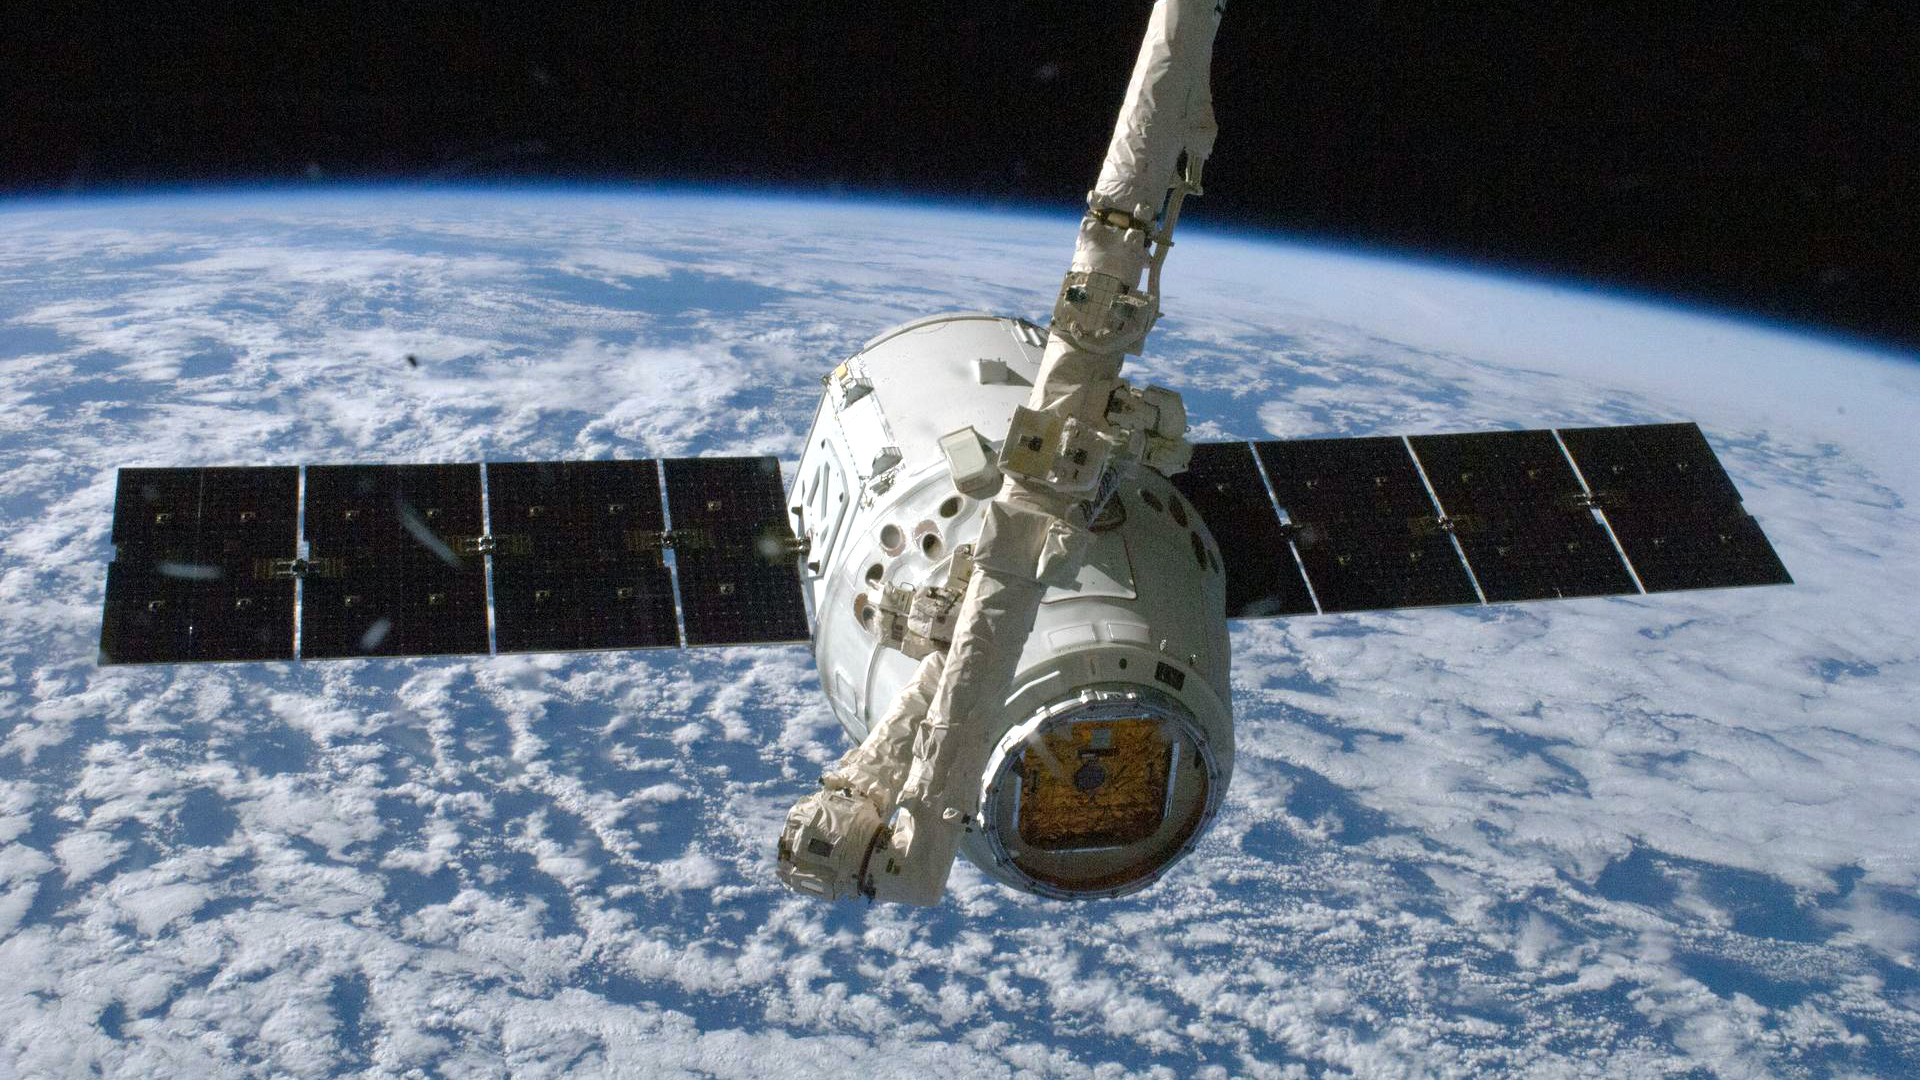 SpaceX sends AI robot 'crew member' to join astronauts on space station